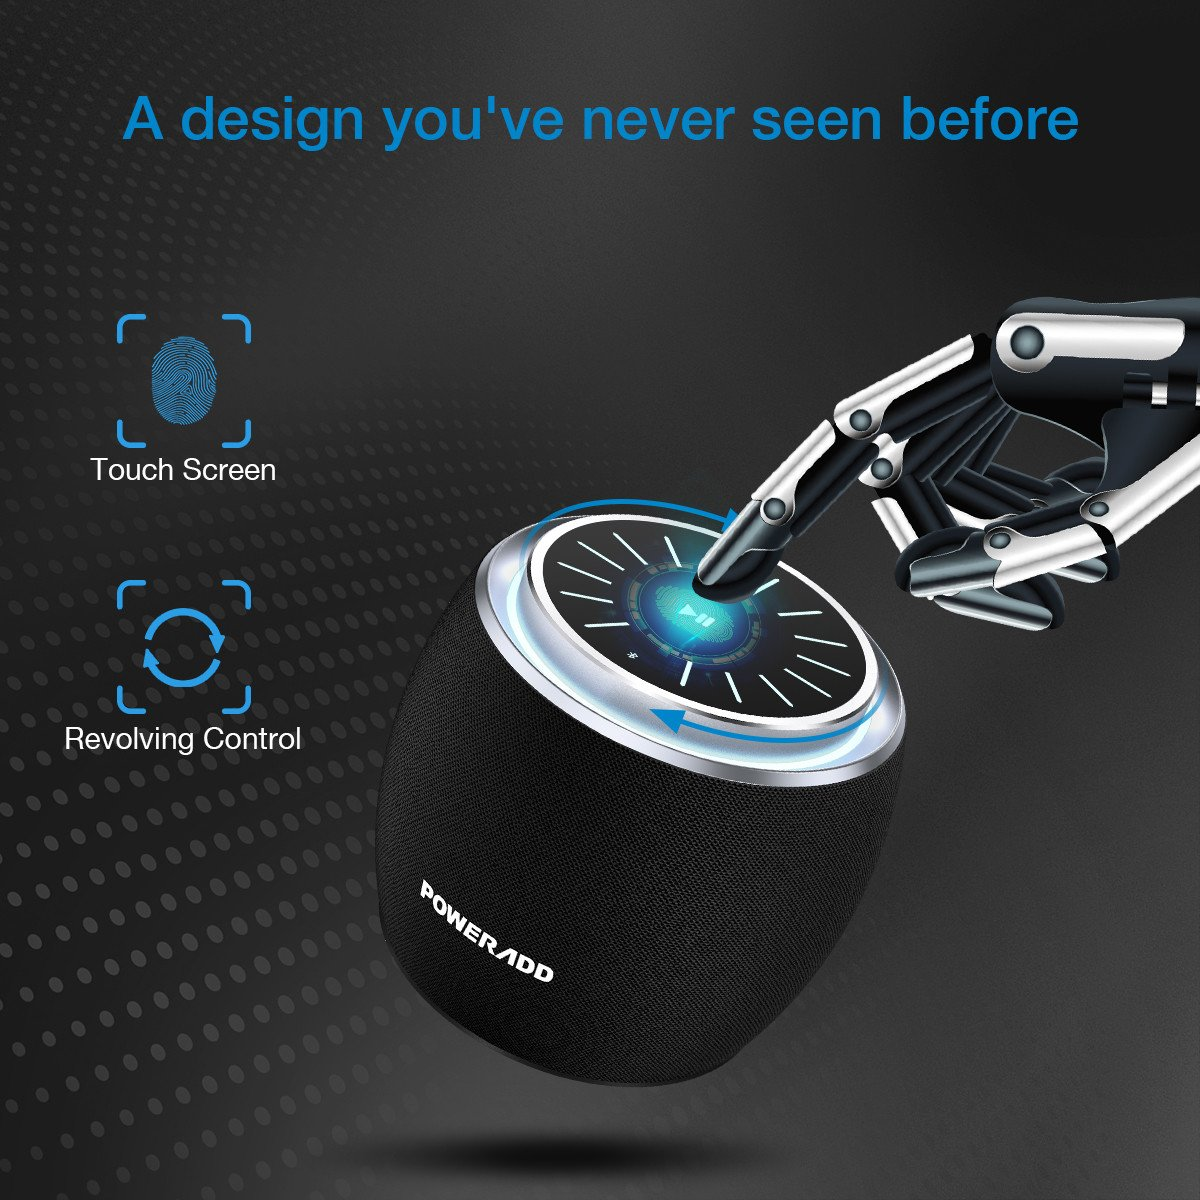 Bluetooth Speaker, Poweradd Dee-G Mini Portable Bluetooth Speaker, LED Touch Control with Impressive Sound, Rotate Plate Control Volume, 1200mAh Battery, Works with iPhone, iPad, Samsung, HTC, Android